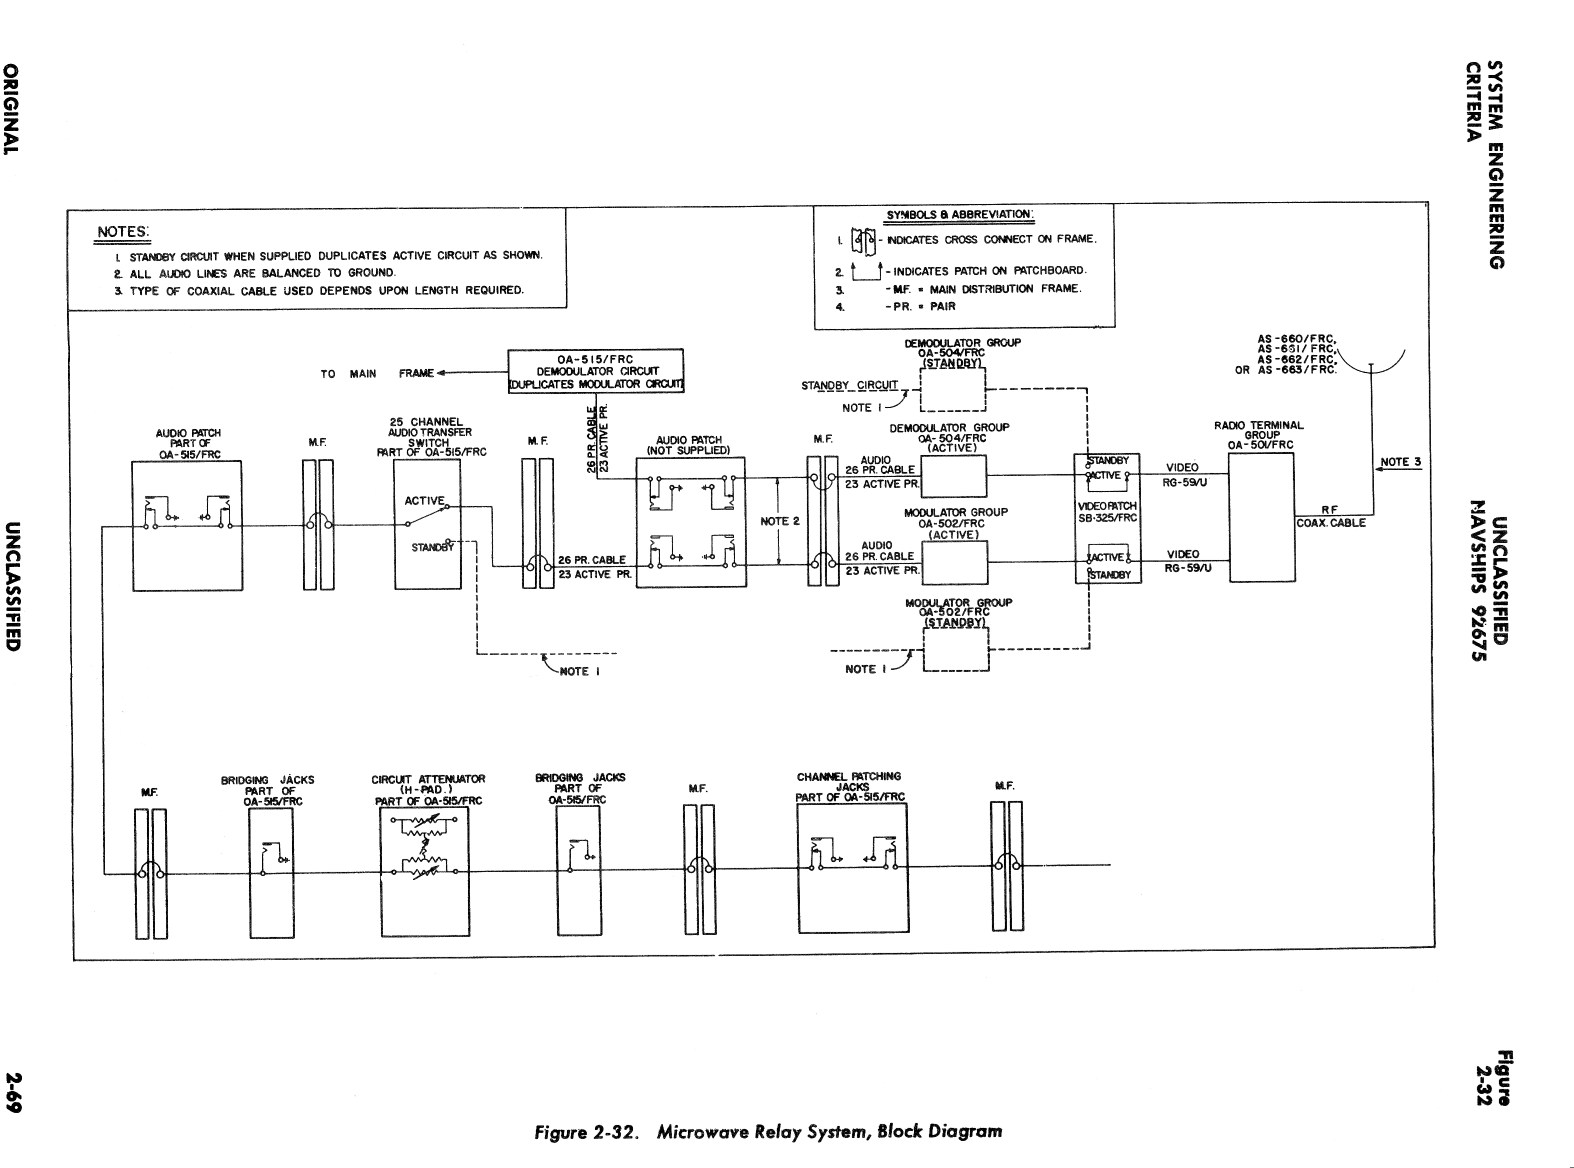 hight resolution of relay panel shore 2 32 jpg 197958 bytes